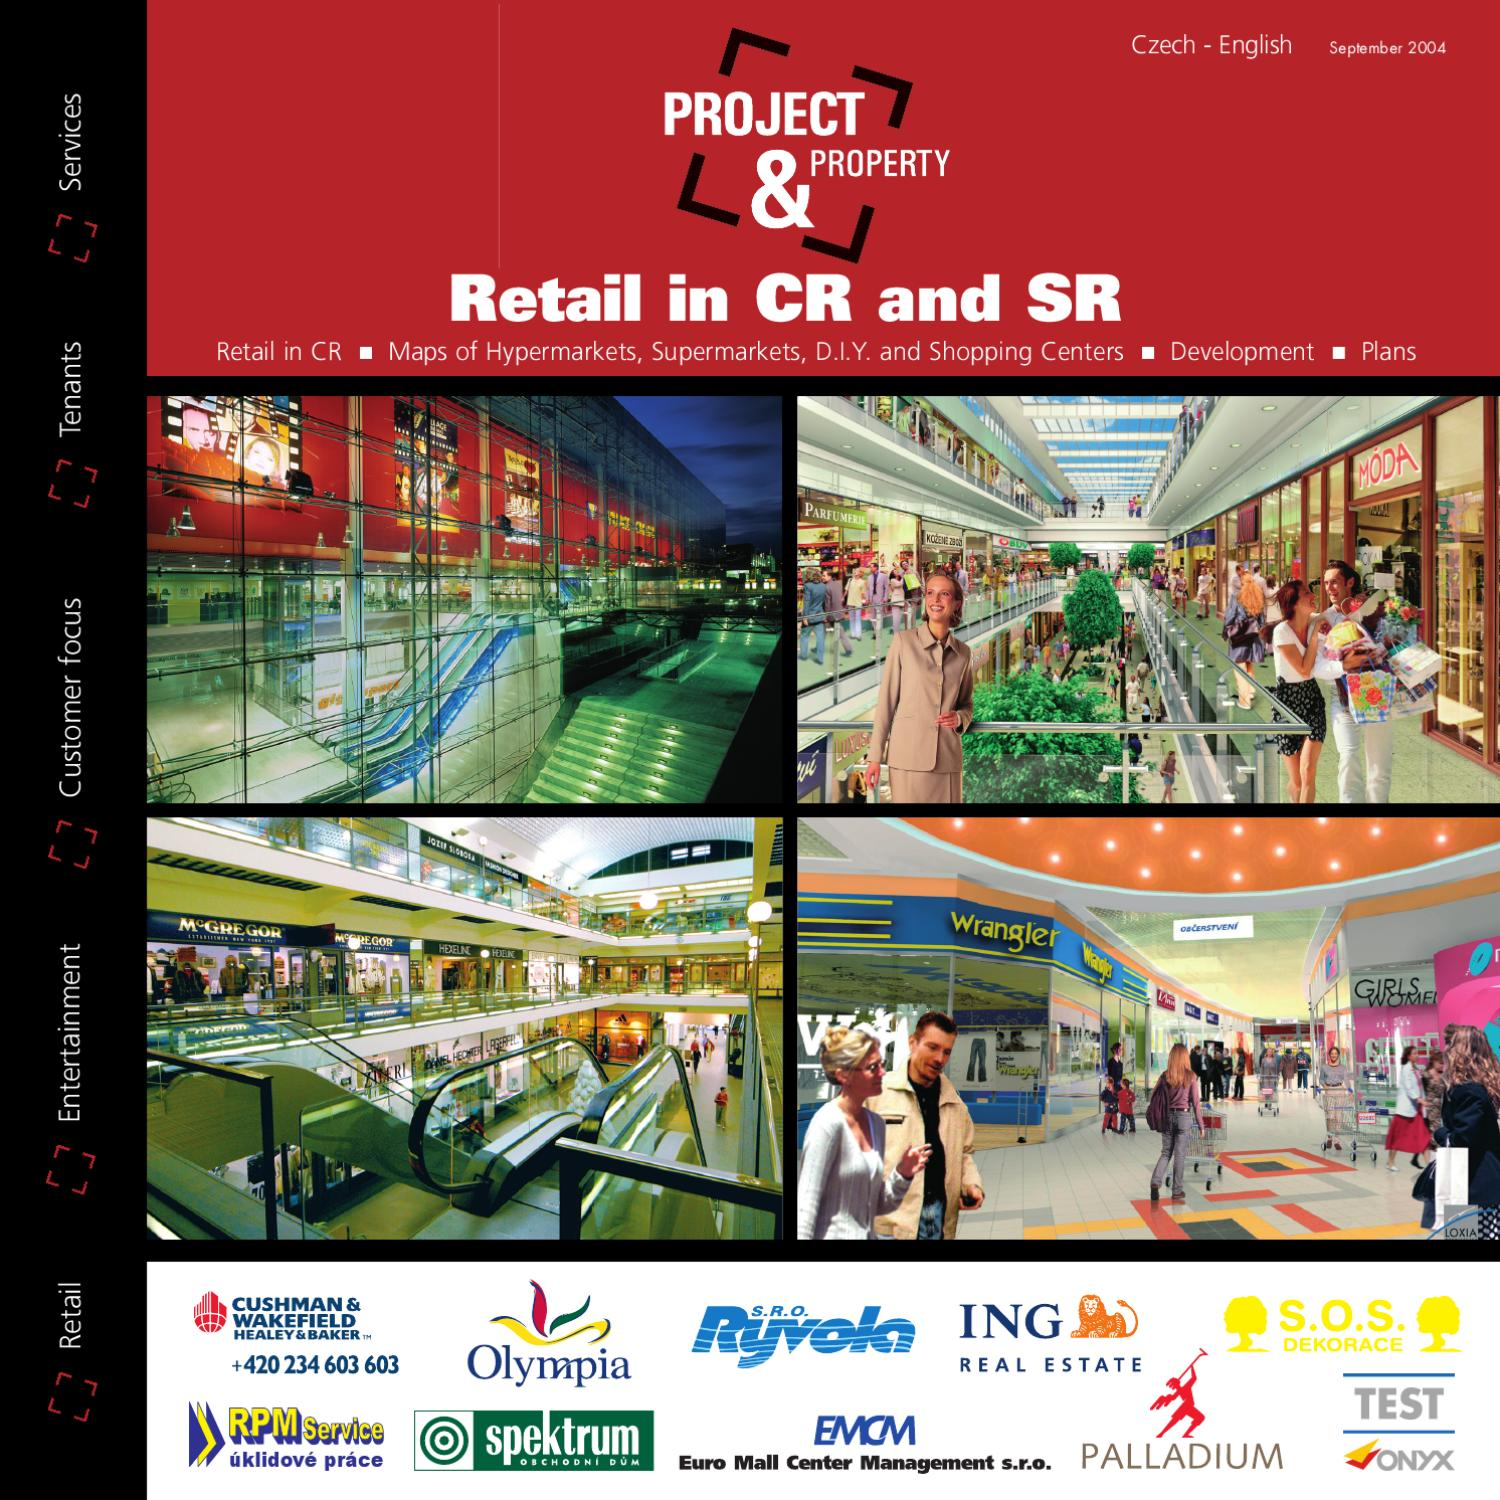 cab31ffe734 RETAIL in ČR and SR by C enters Publishing s.r.o. - issuu